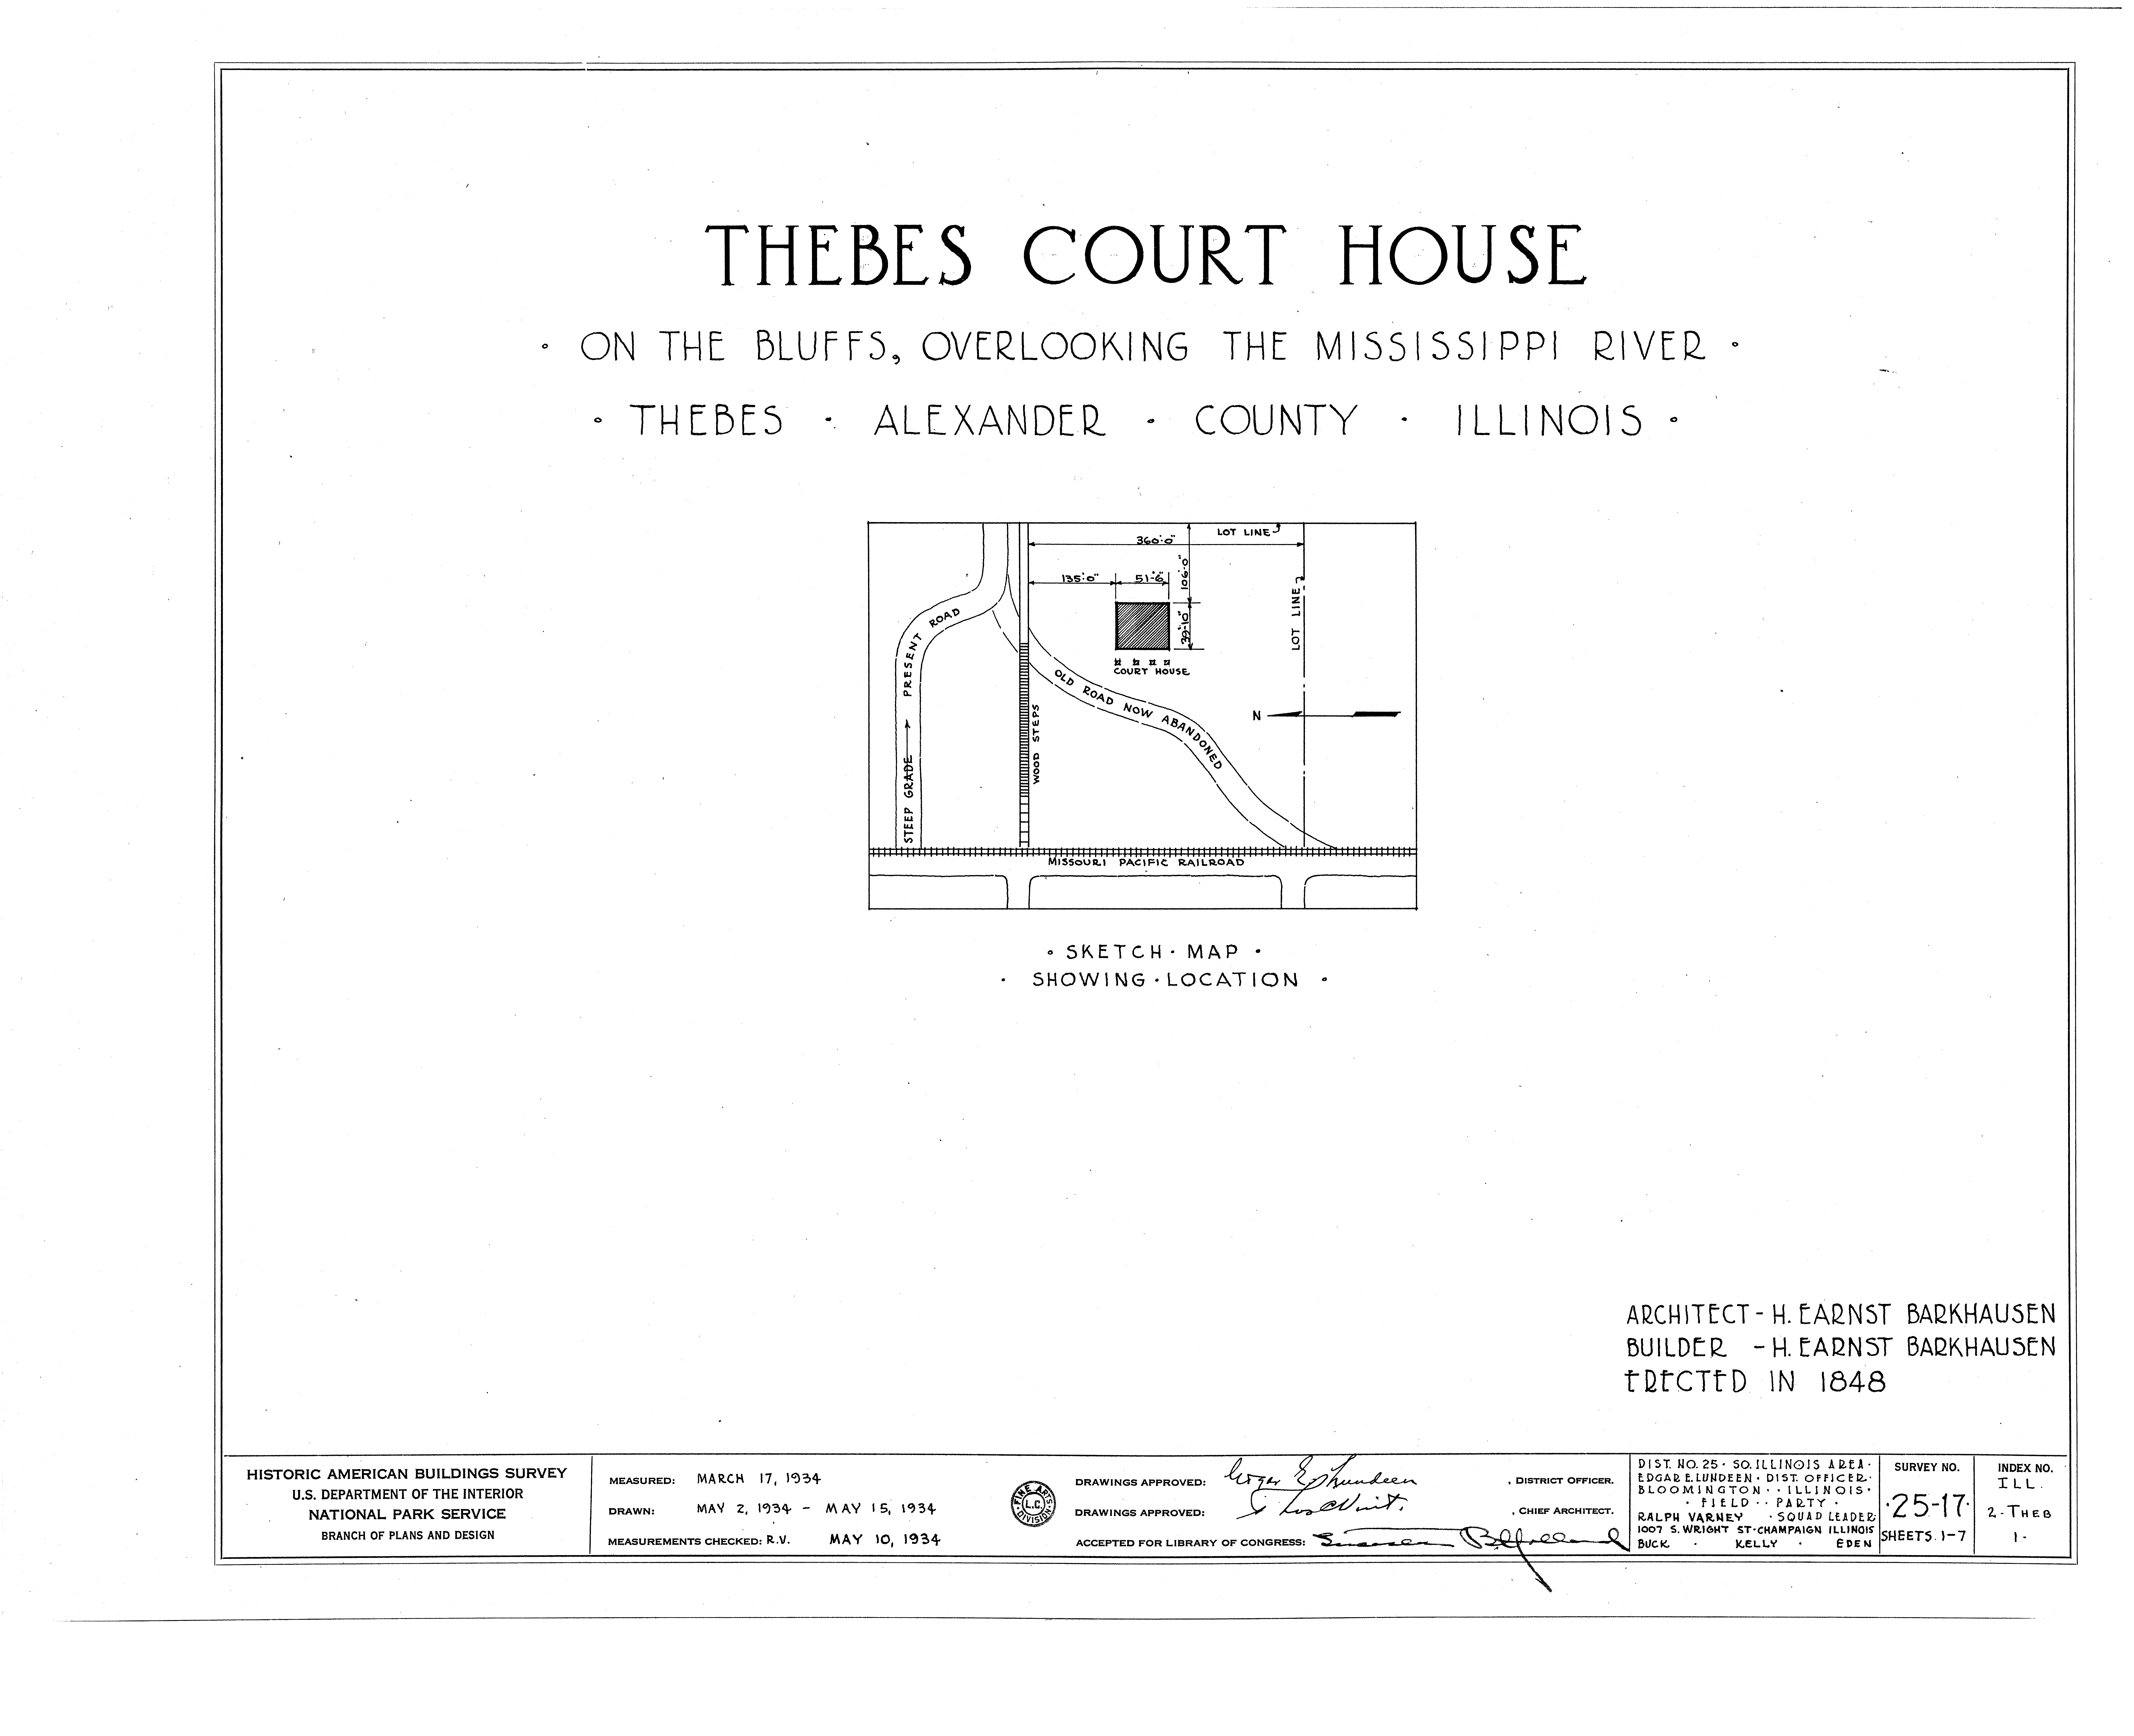 Illinois alexander county thebes - File Thebes Courthouse Thebes Alexander County Il Habs Ill 2